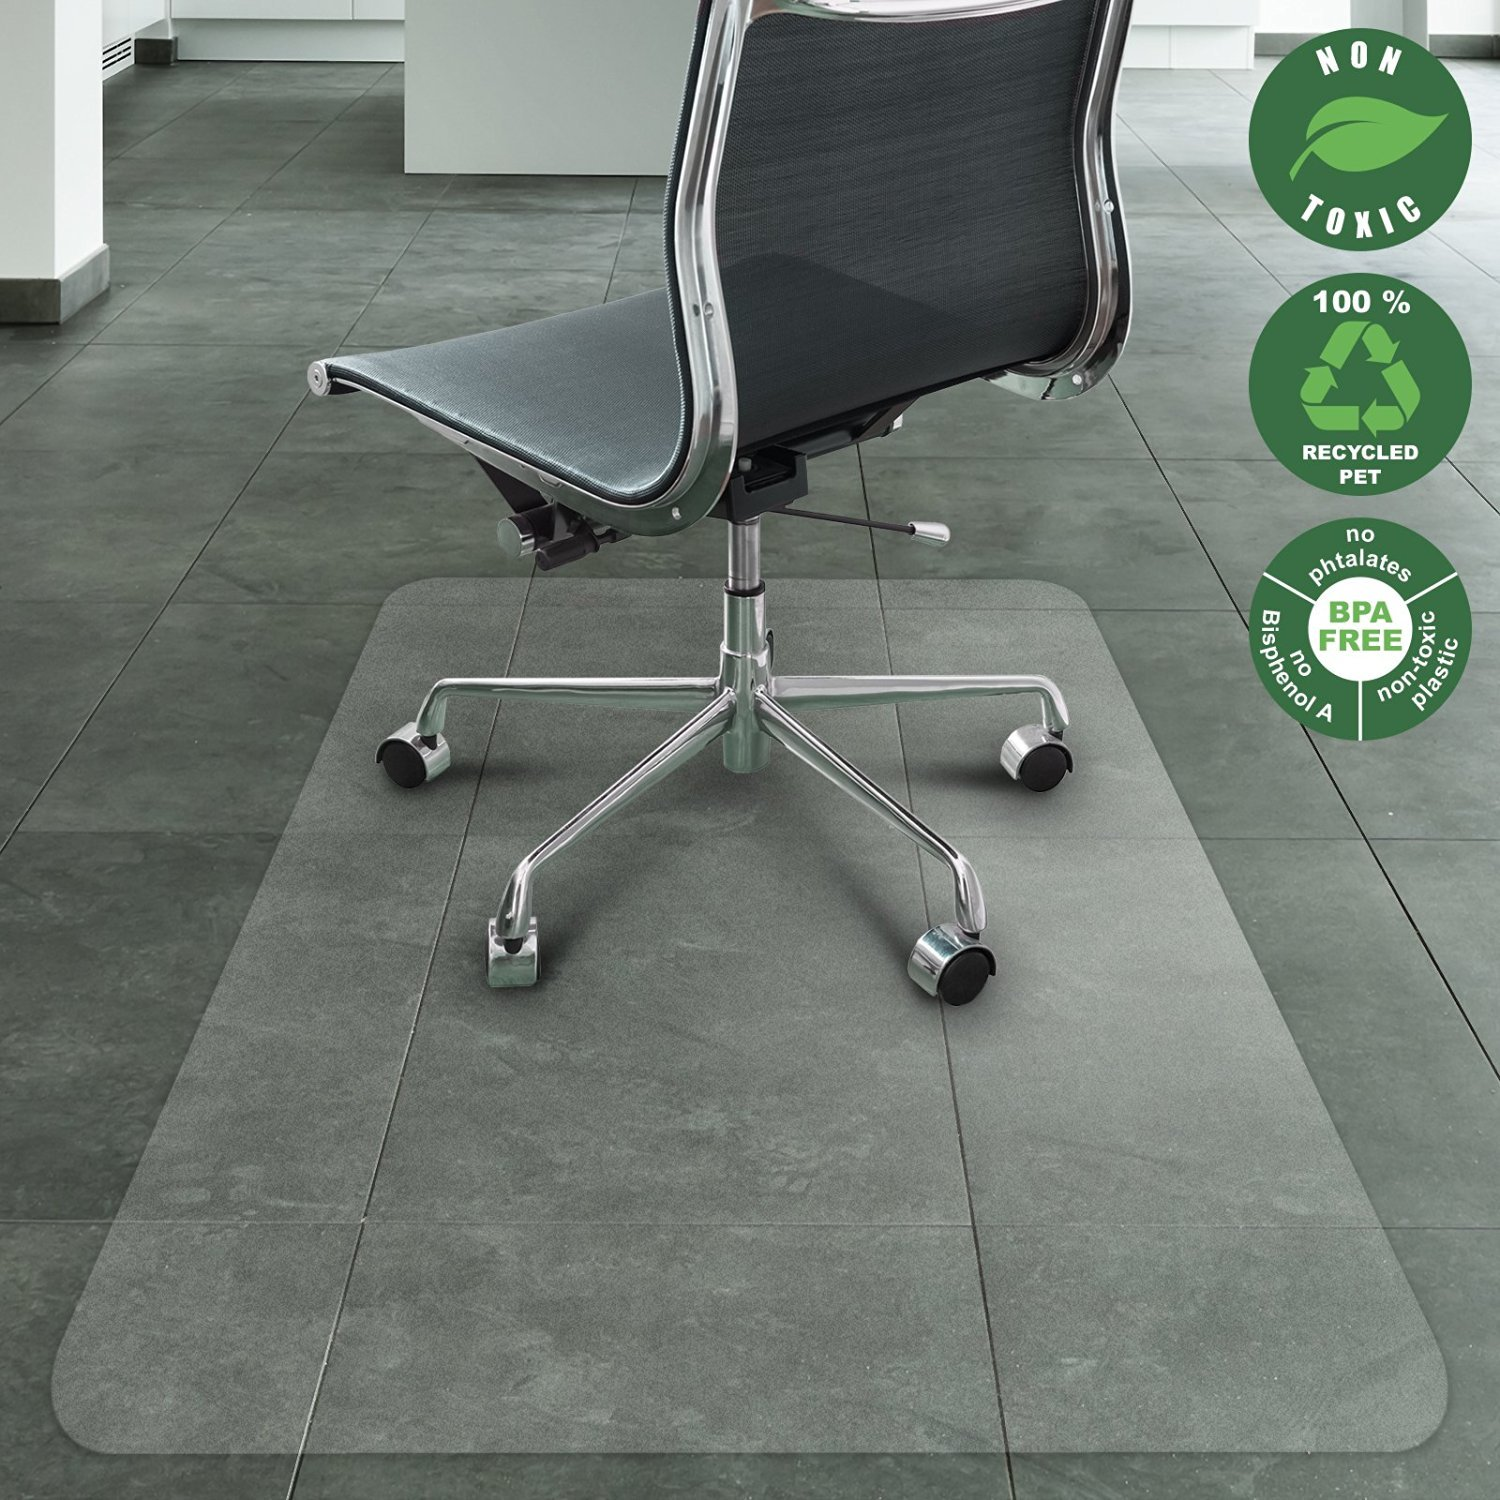 High Quality Office Marshal Chair Mat For Hard Floors | Eco Friendly Series Chair Floor  Protector |